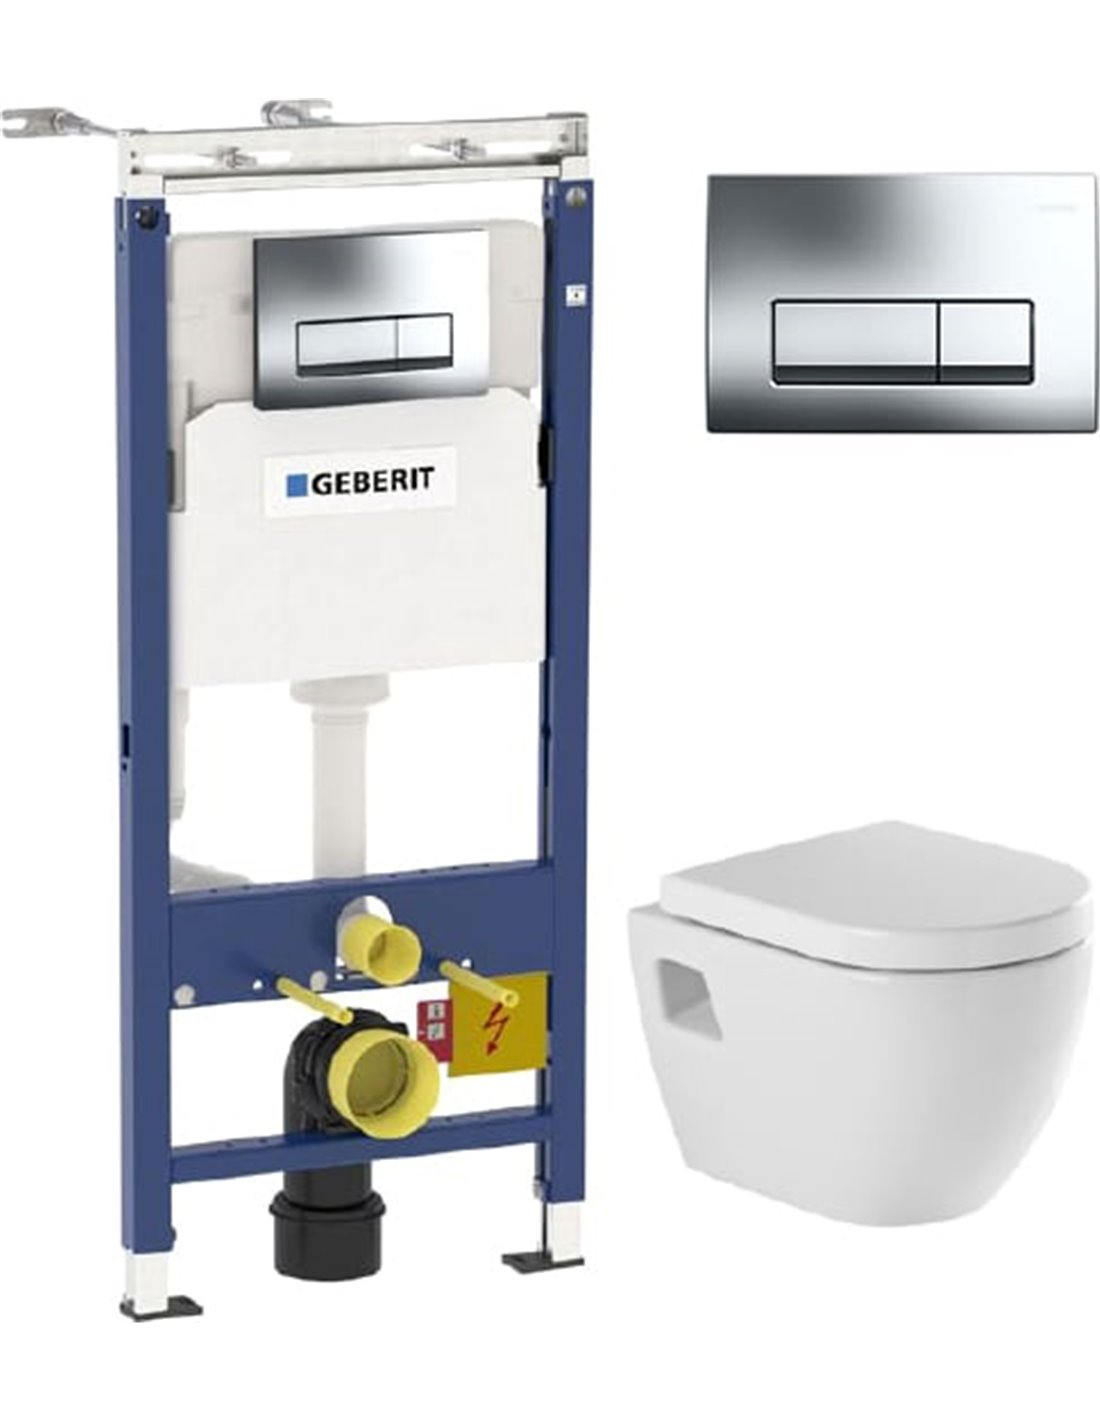 Set Frame For A Toilet Geberit Duofix Plattenbau 458 125 21 1 4 In 1 With Button